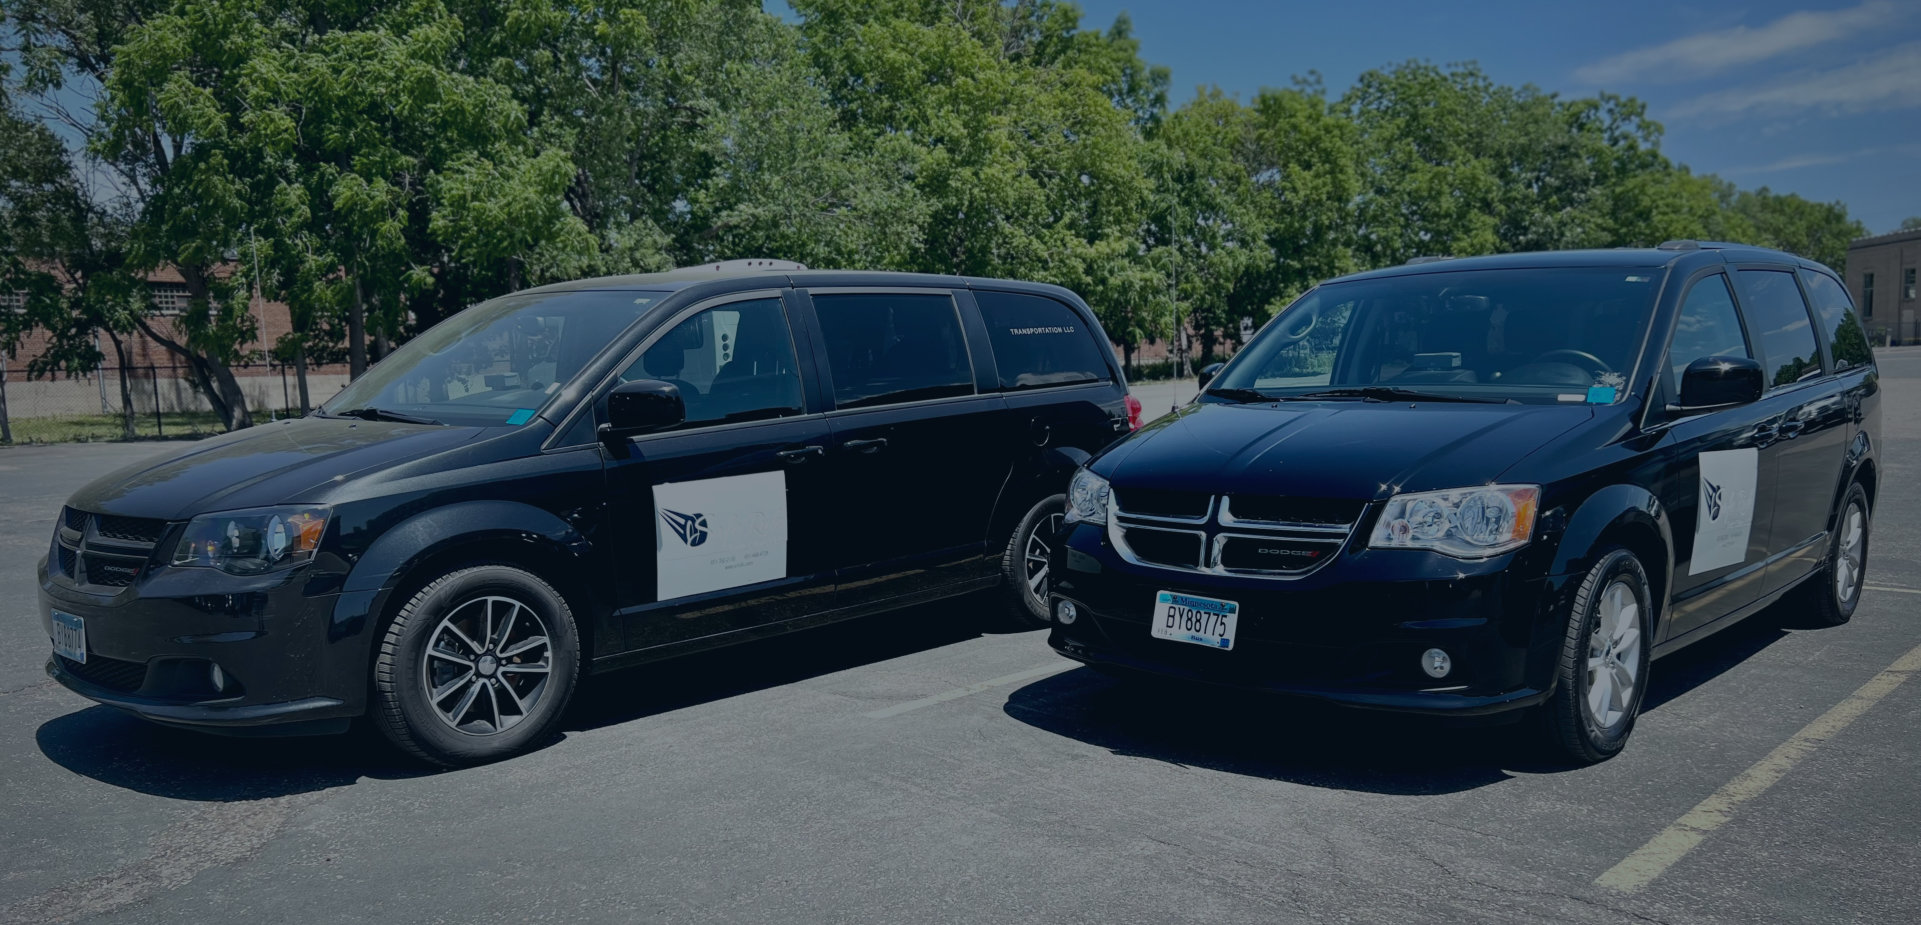 medical transportation van in desert background